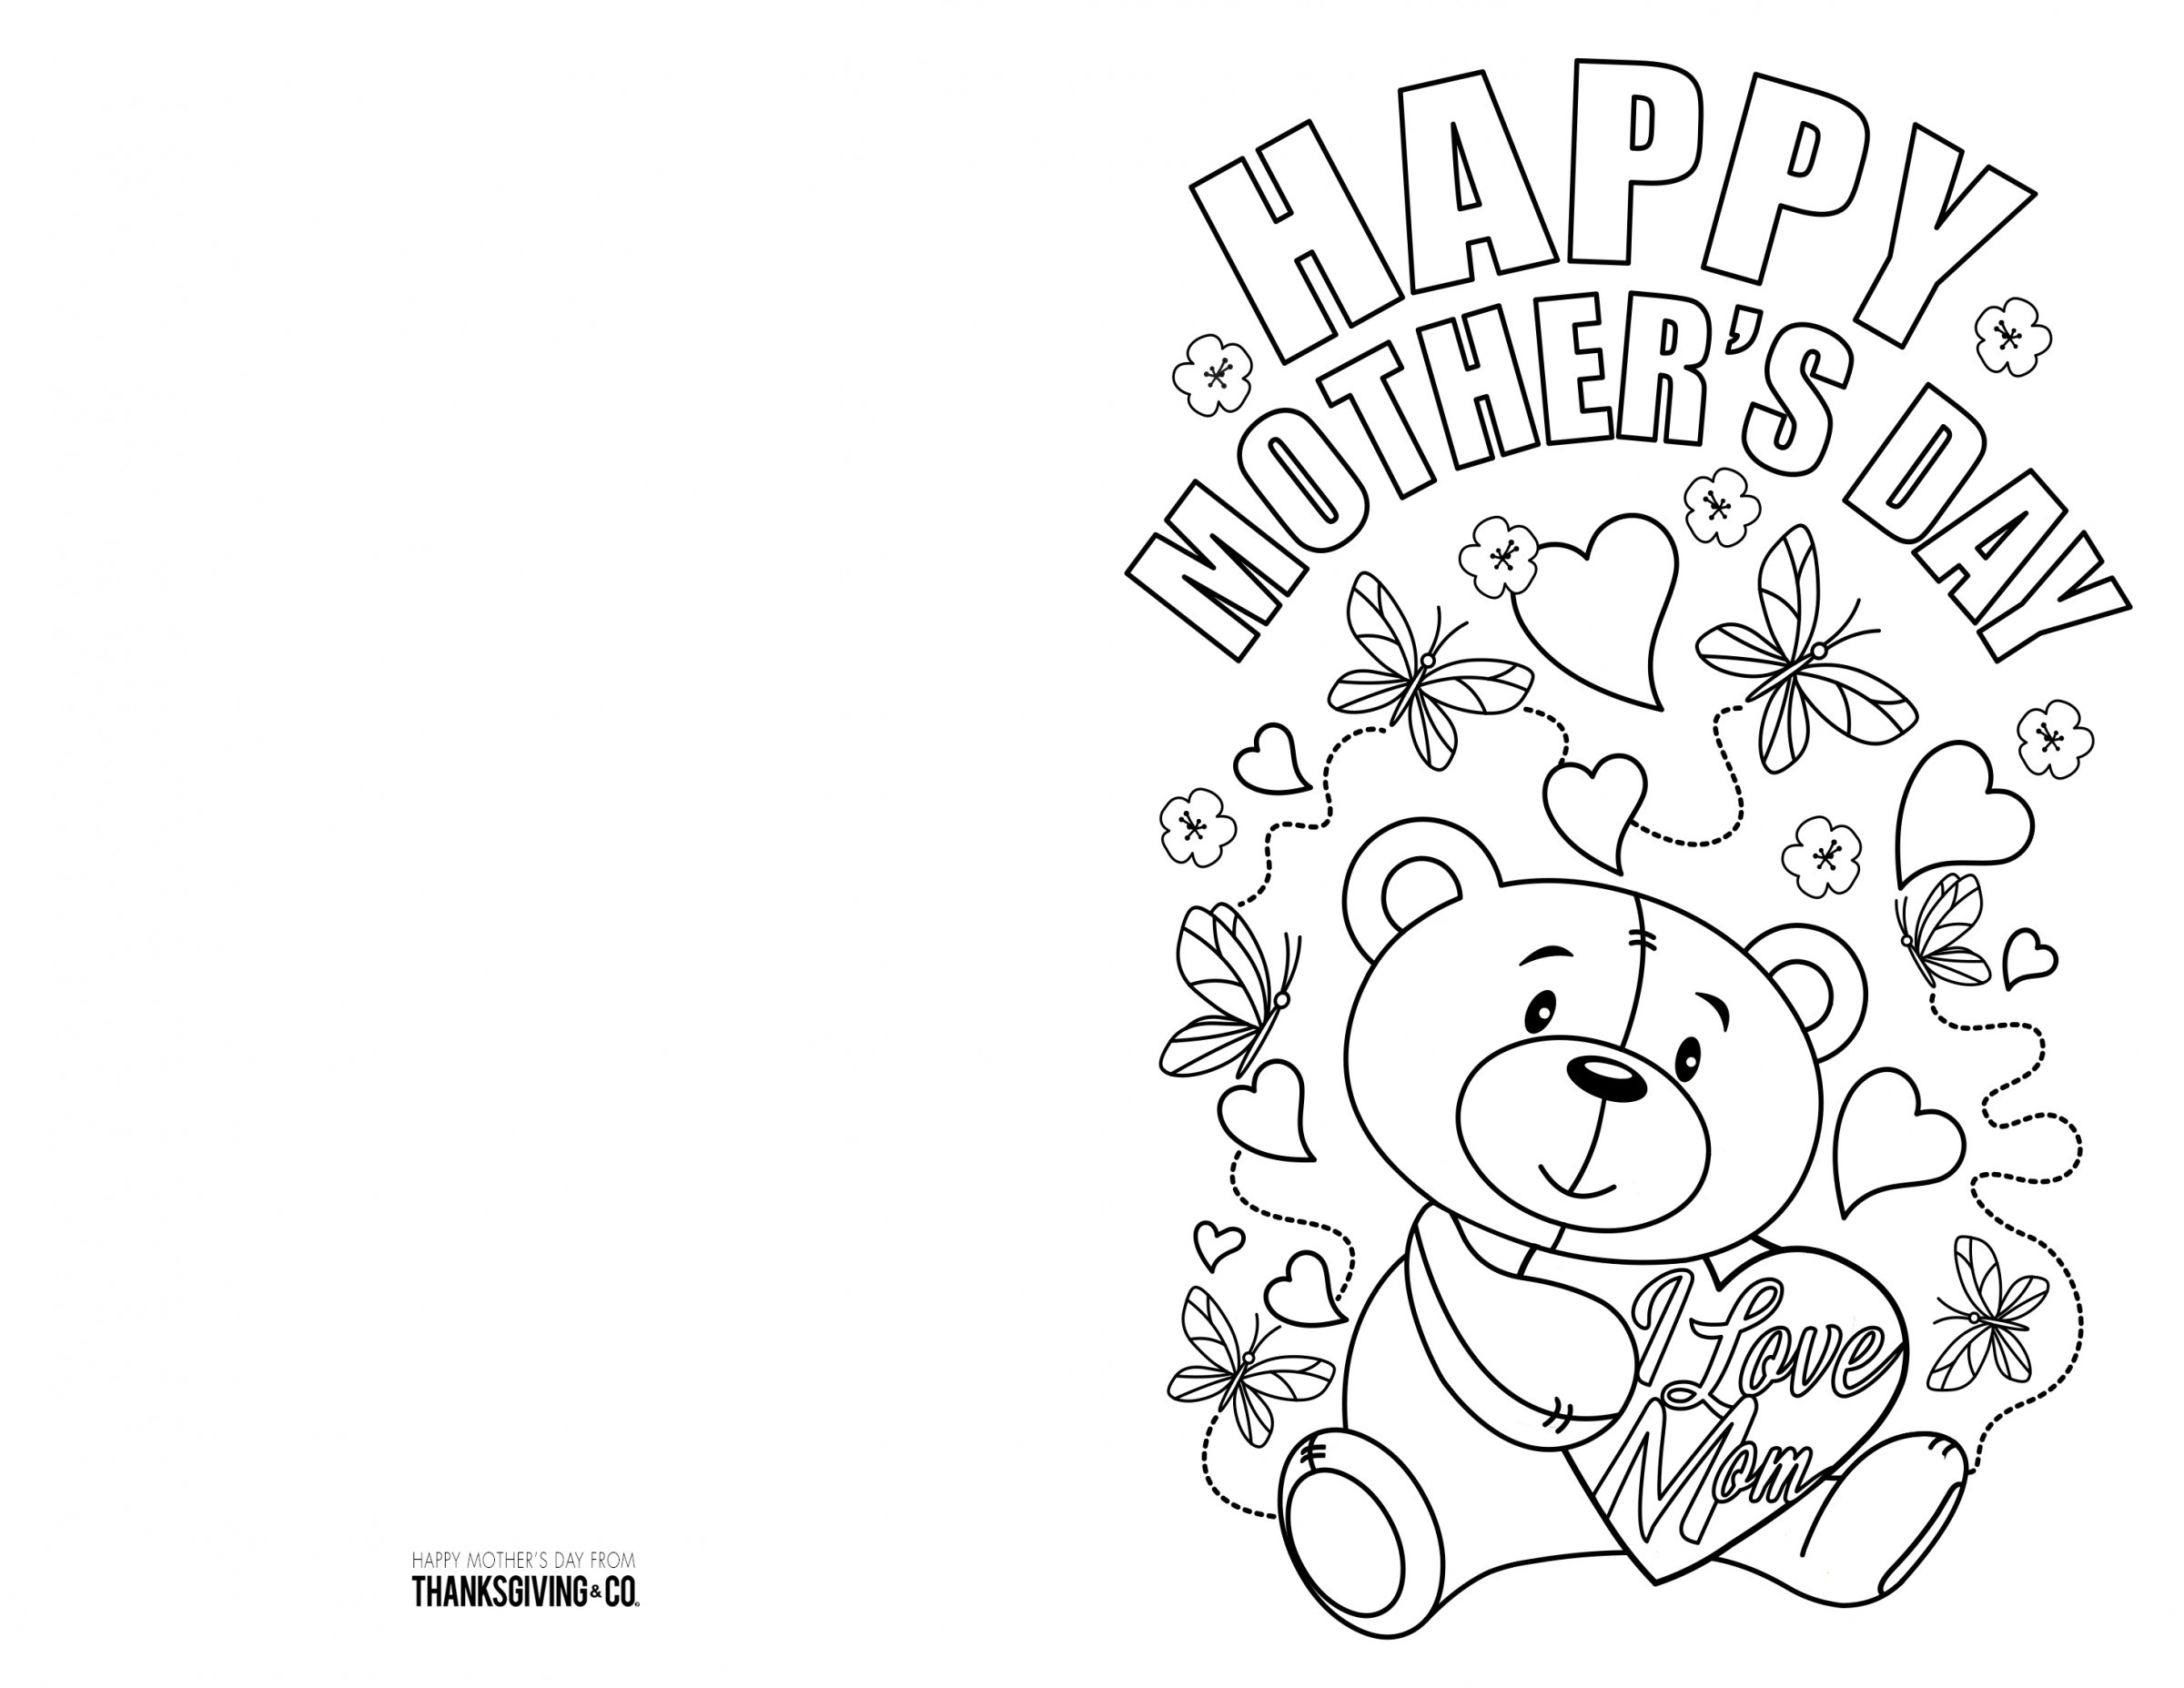 Coloring ~ Free Mothers Day Colouring Cards Pin Coloring Picture - Free Printable Mothers Day Coloring Cards